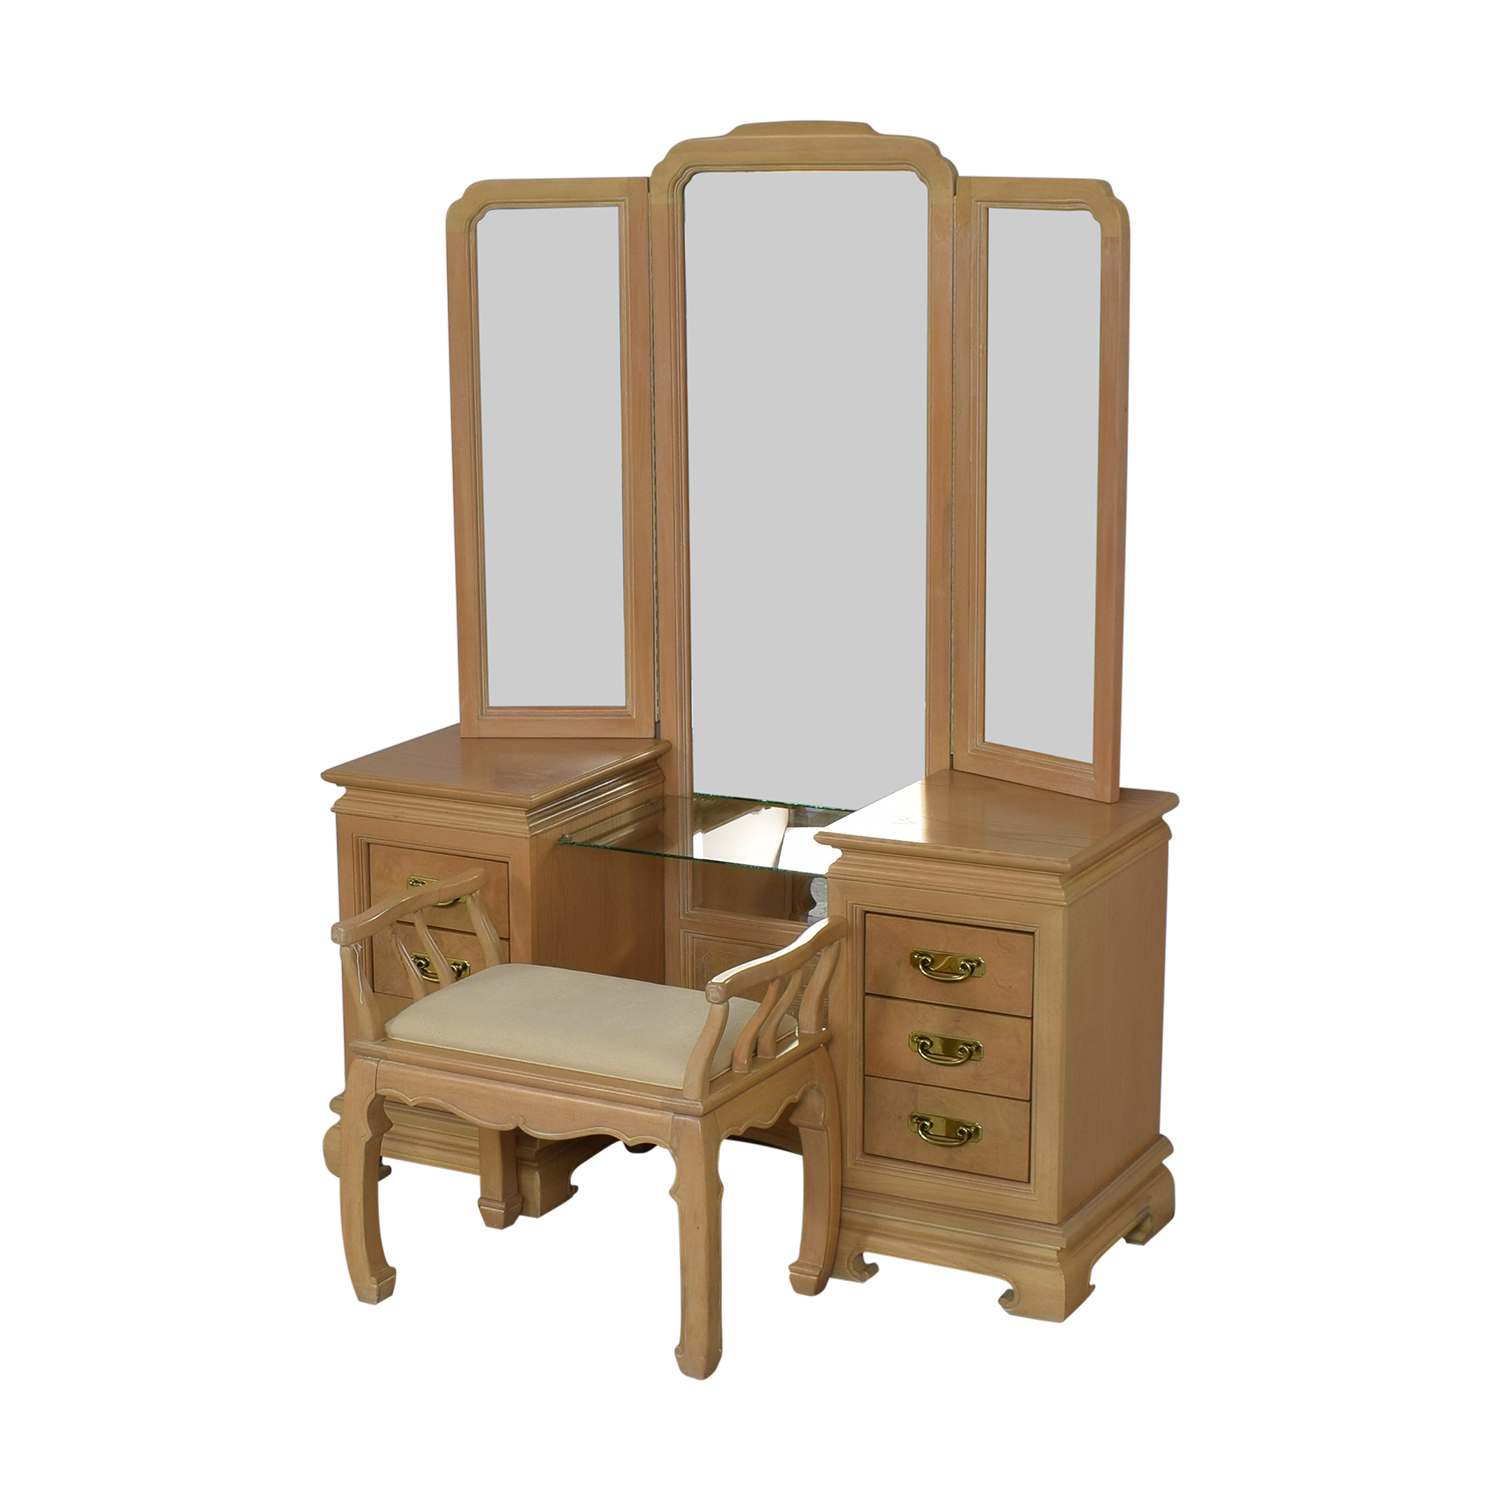 Stanley Furniture Vanity with Chair / Tables